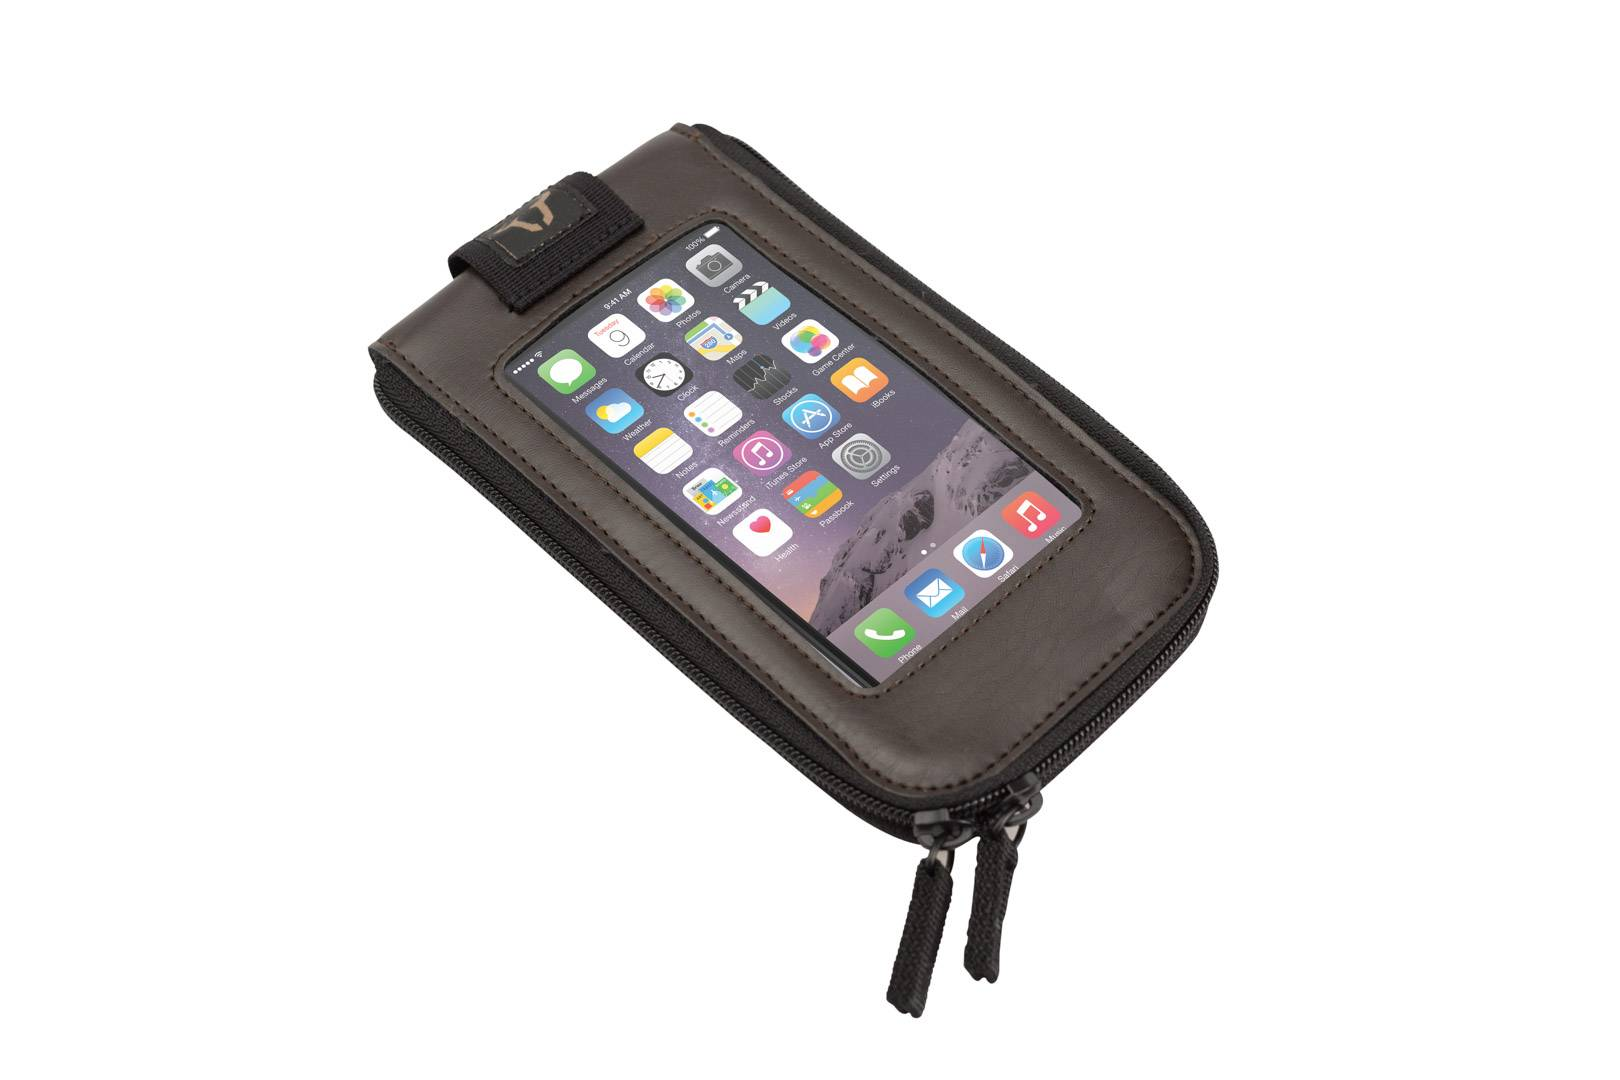 """SW-Motech Legend Gear smartphone bag LA3 - Accessory bag. Touch compatible. Display to 5,5"""". """"smartphone bag LA3 - Accessory bag Touch compatible Display to 5,5"""""""""""""""